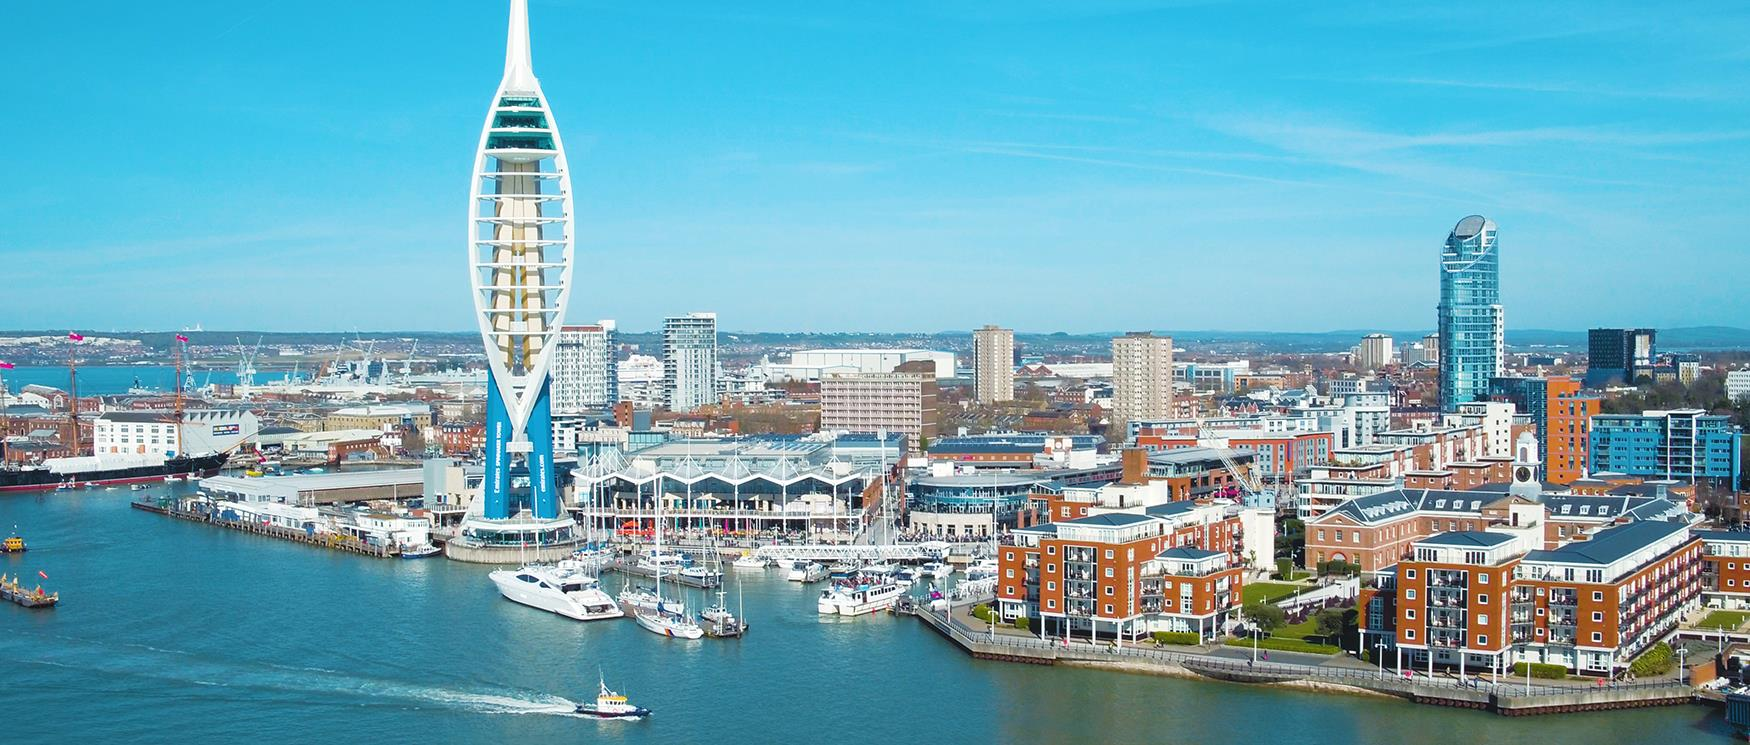 The city of Portsmouth